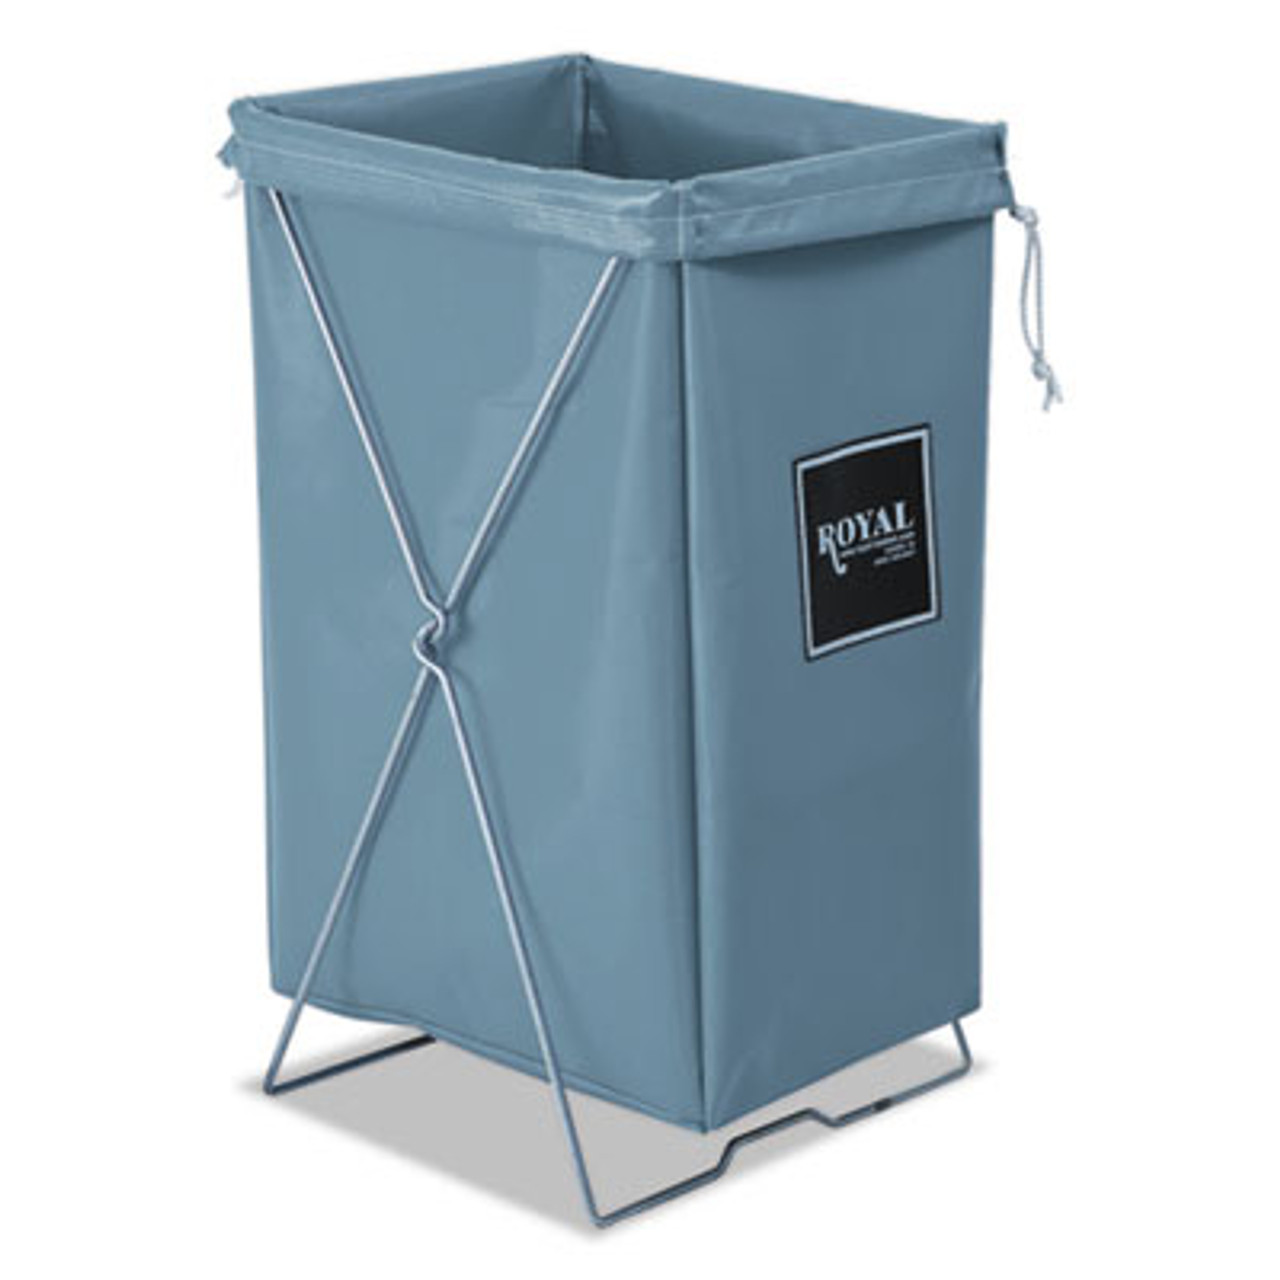 Royal Hamper, Hamper Bag and Stand, 30 gal, 15w x 16d x 30h, Gray